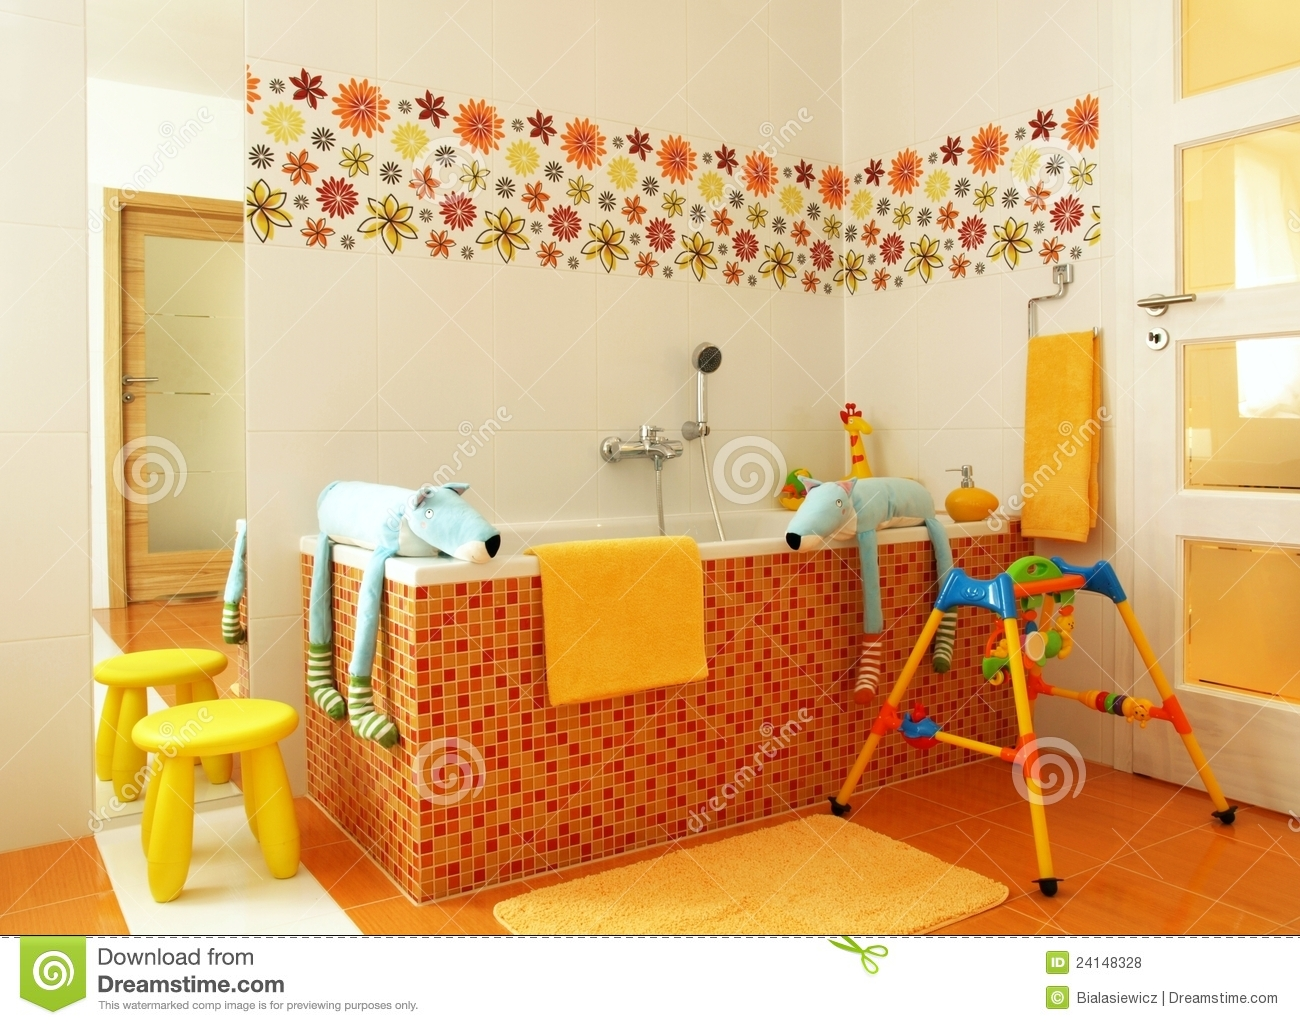 colorful modern bathroom for children royalty free stock photos image 24148328. Black Bedroom Furniture Sets. Home Design Ideas